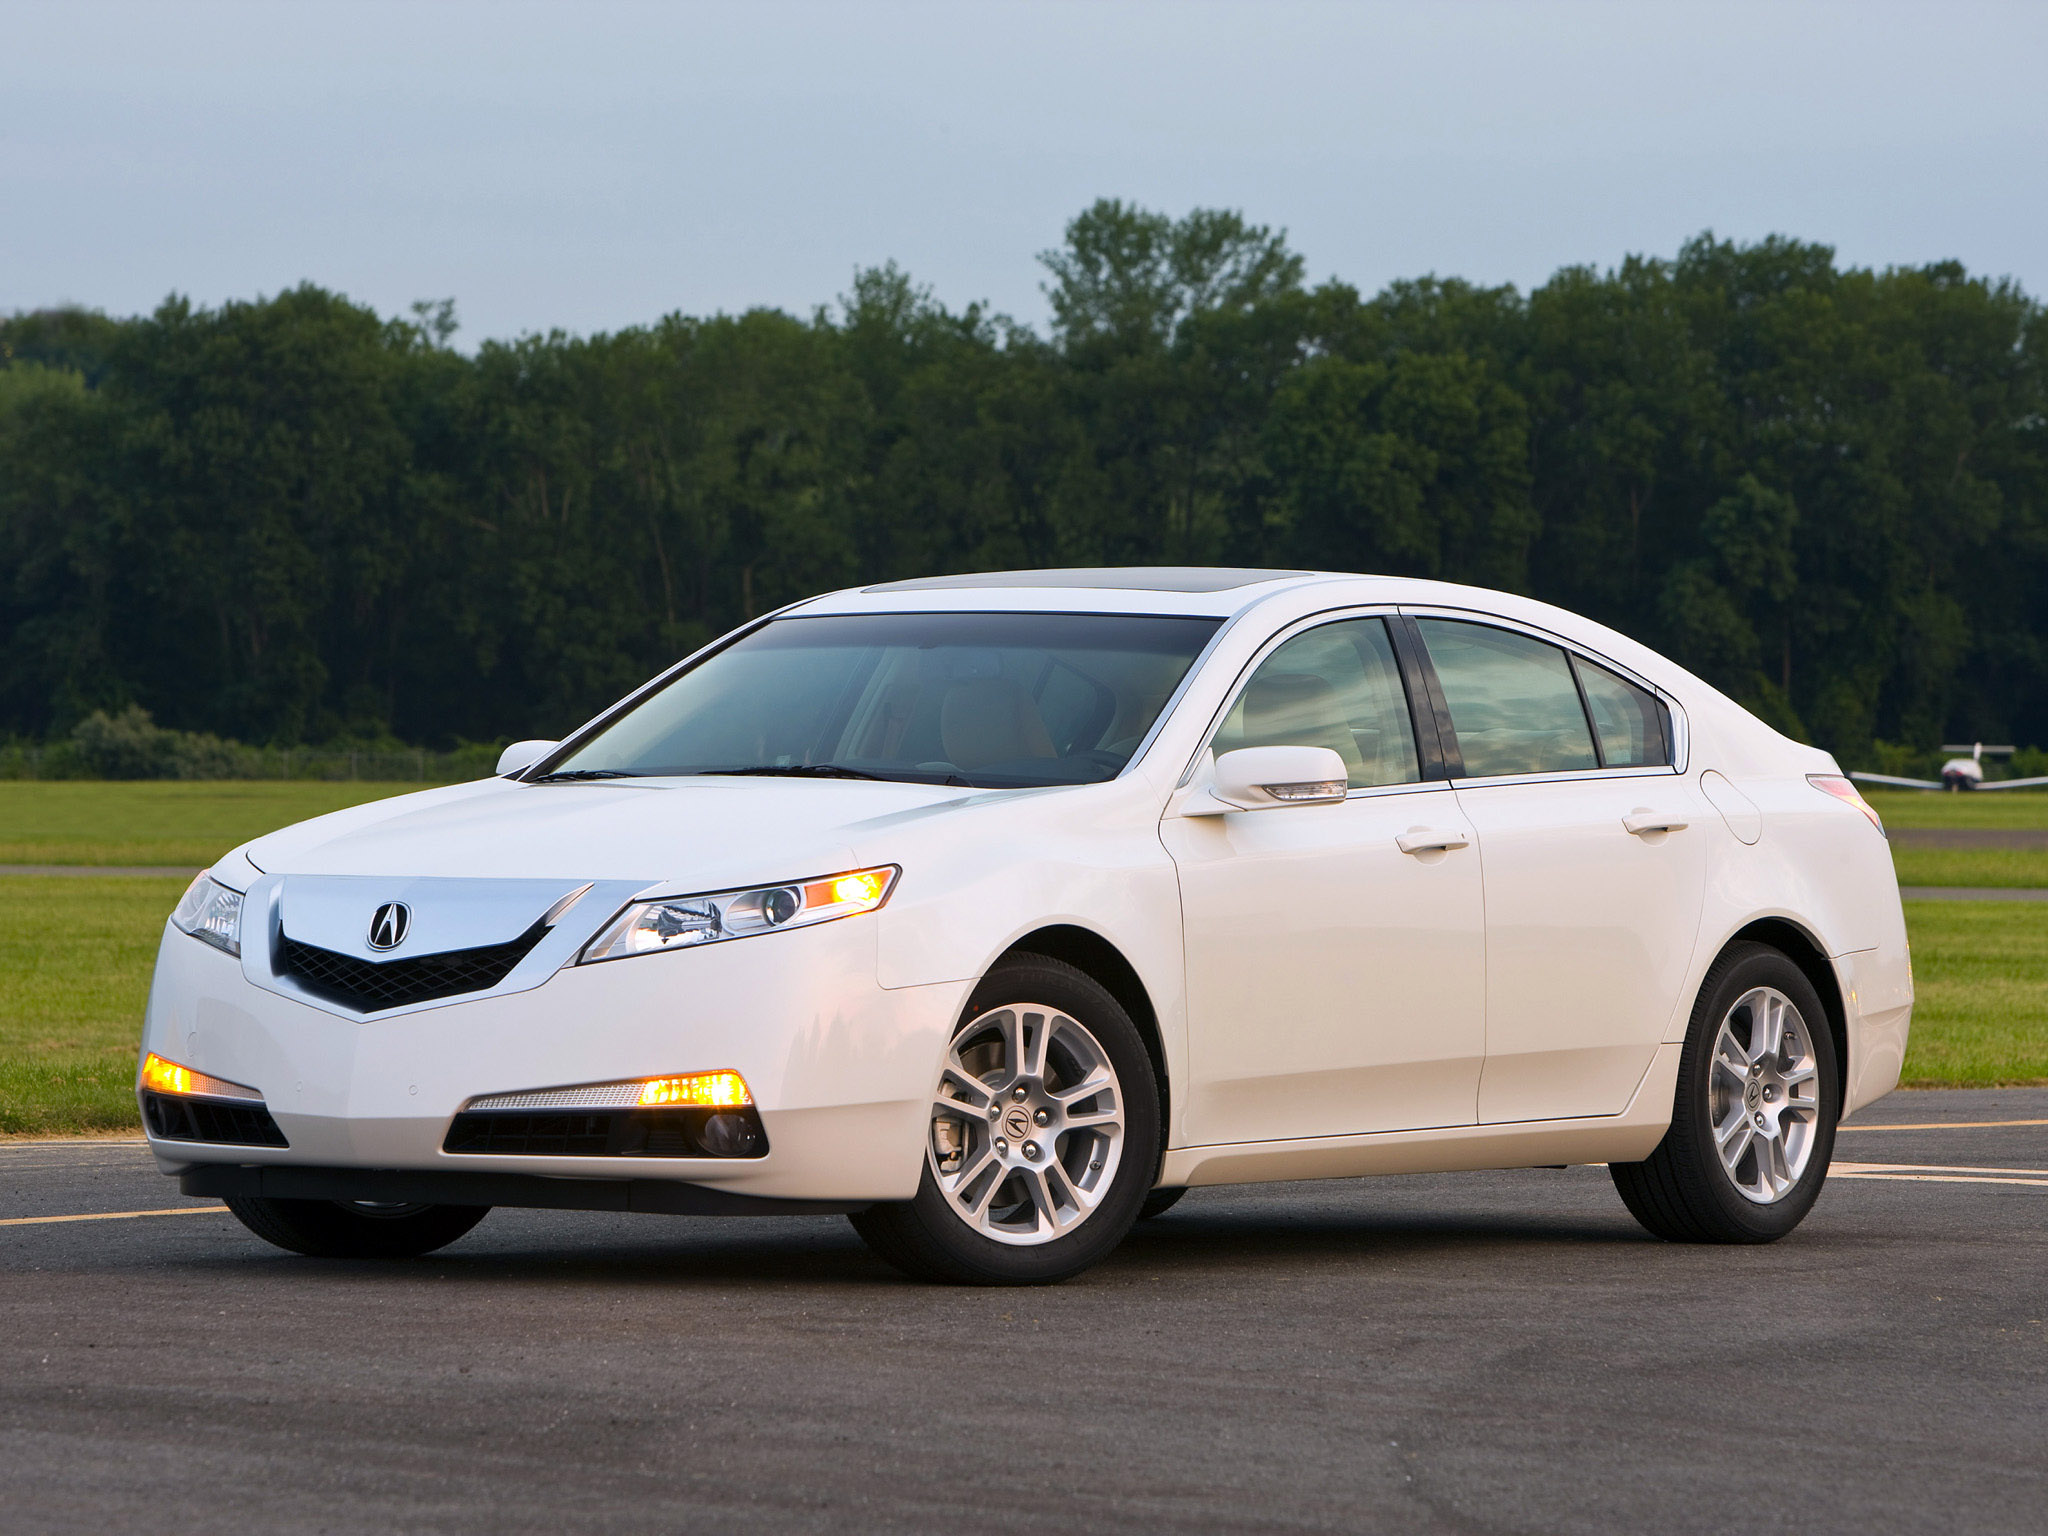 acura tl 2008 acura tl 2008 photo 04 car in pictures. Black Bedroom Furniture Sets. Home Design Ideas